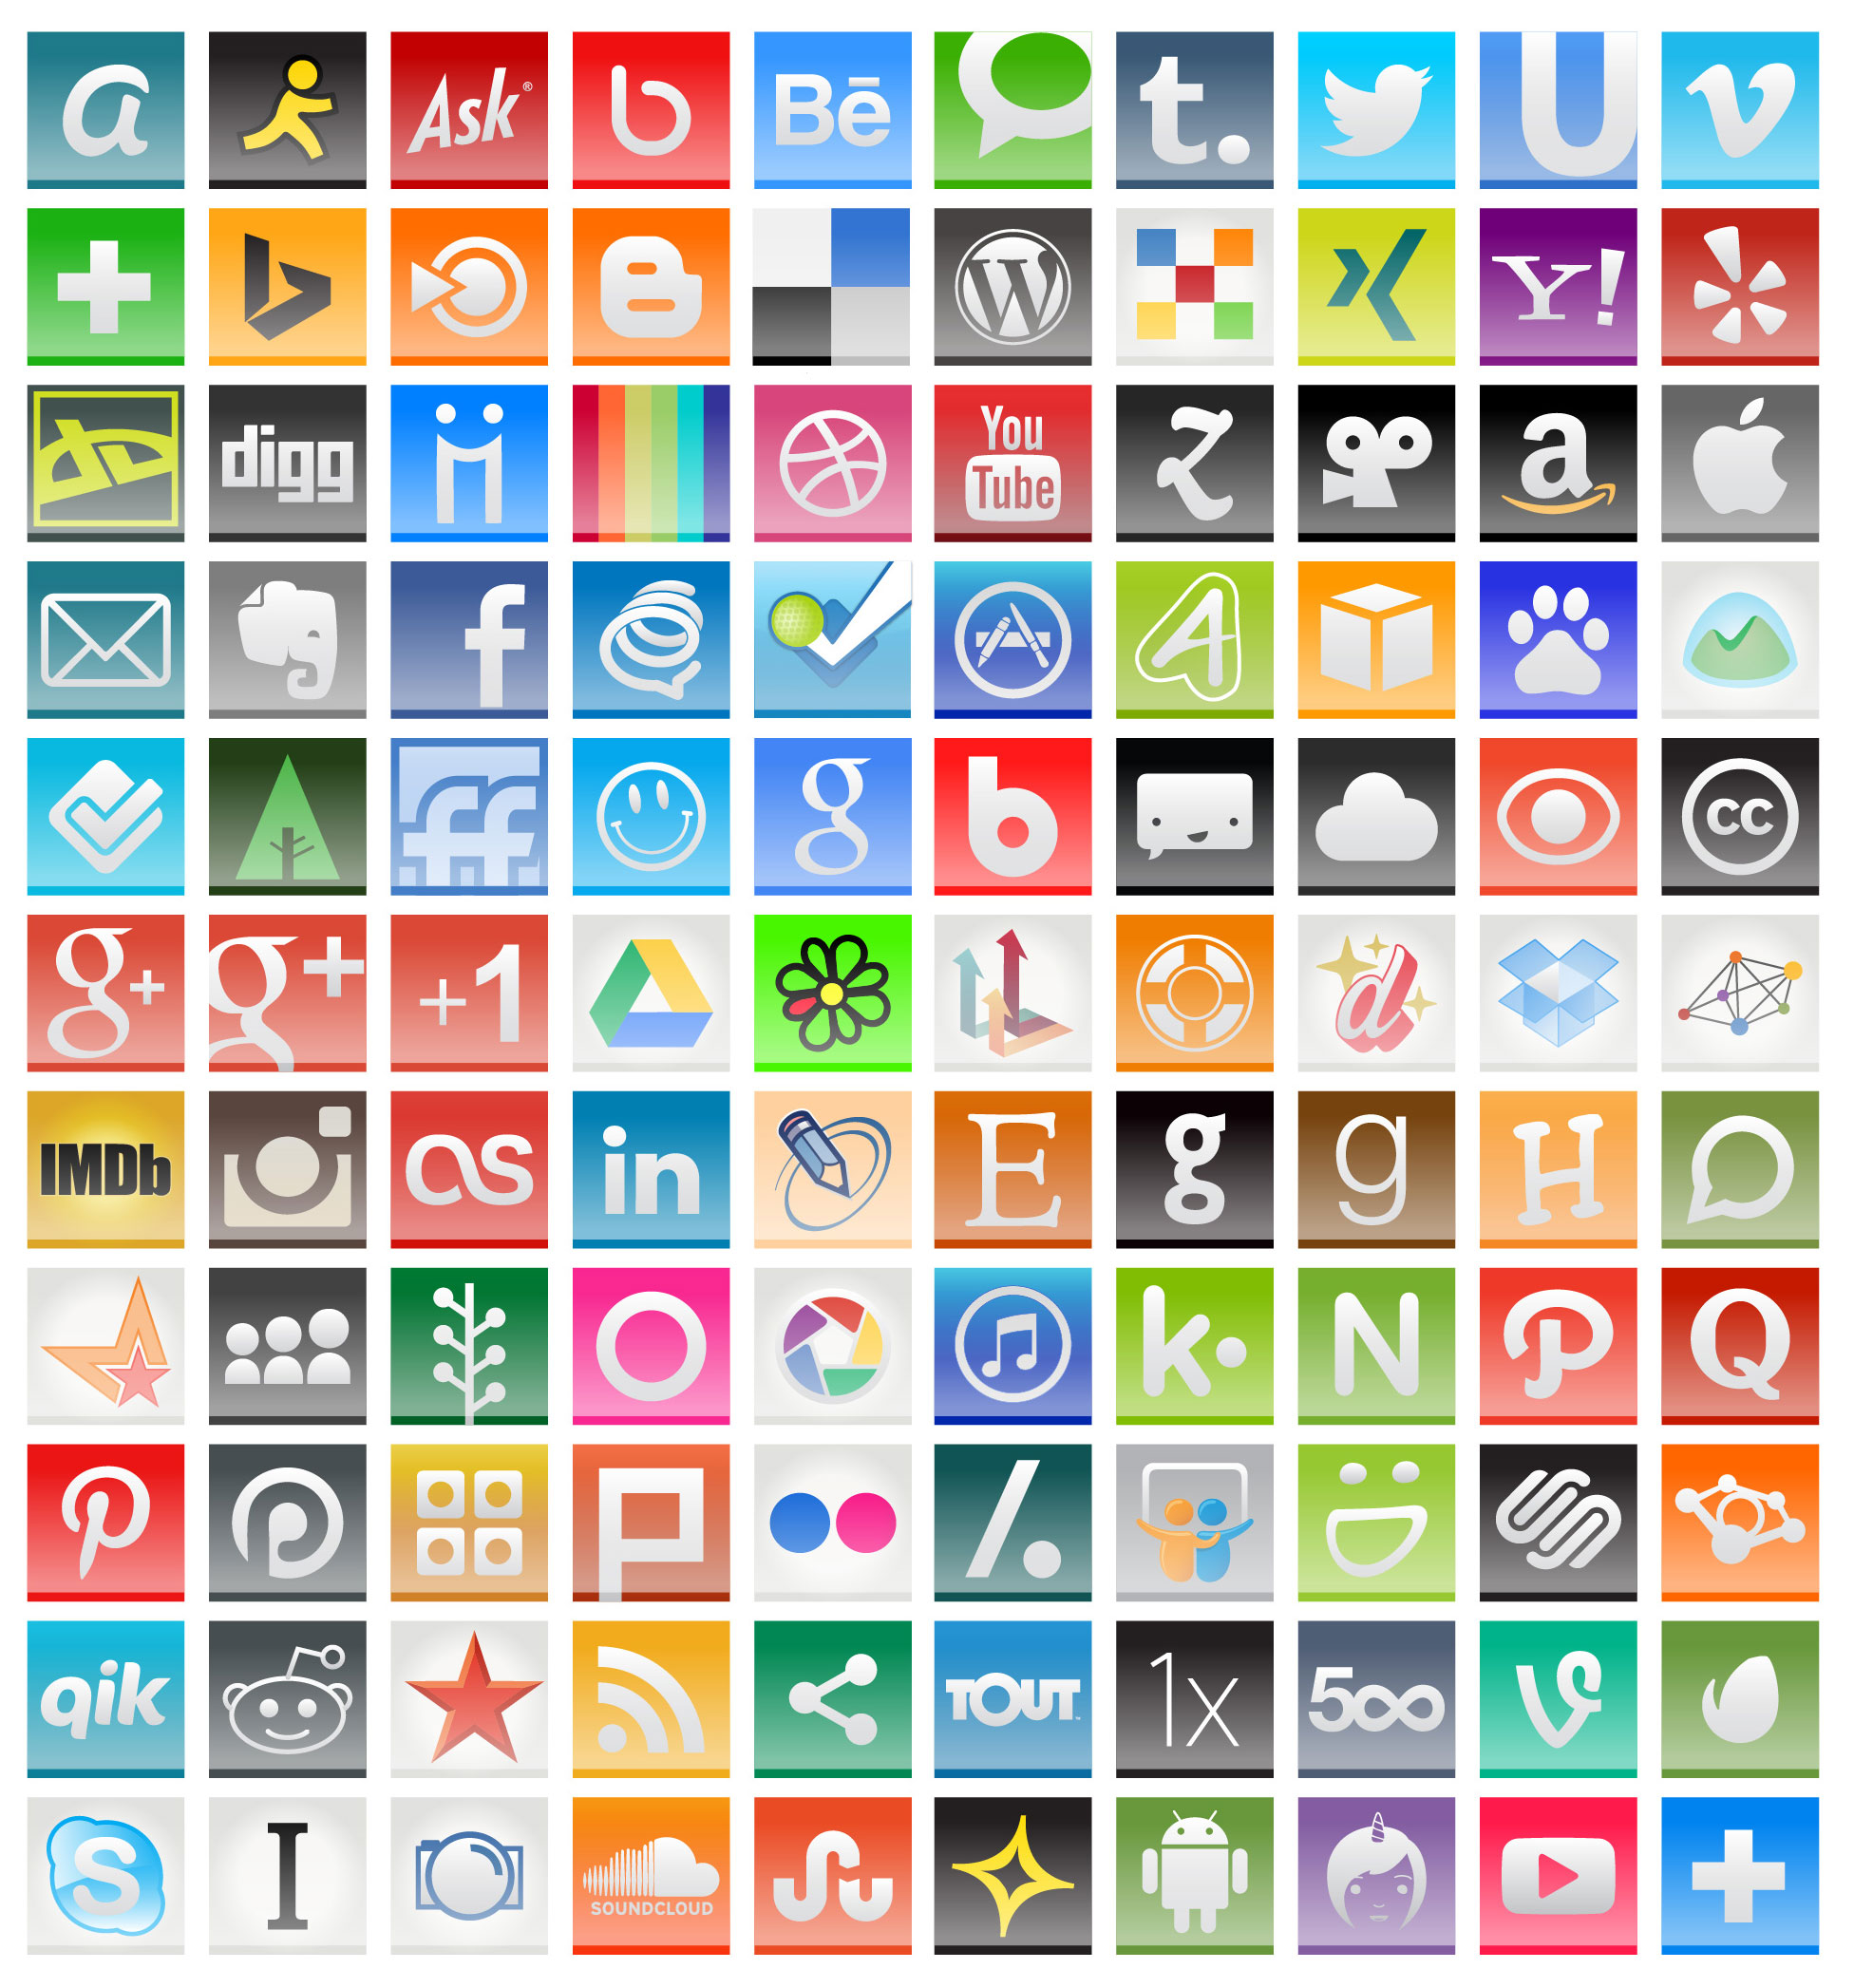 1952x2093 110 Free Social Media Icons For 2014 Vector + Pngs